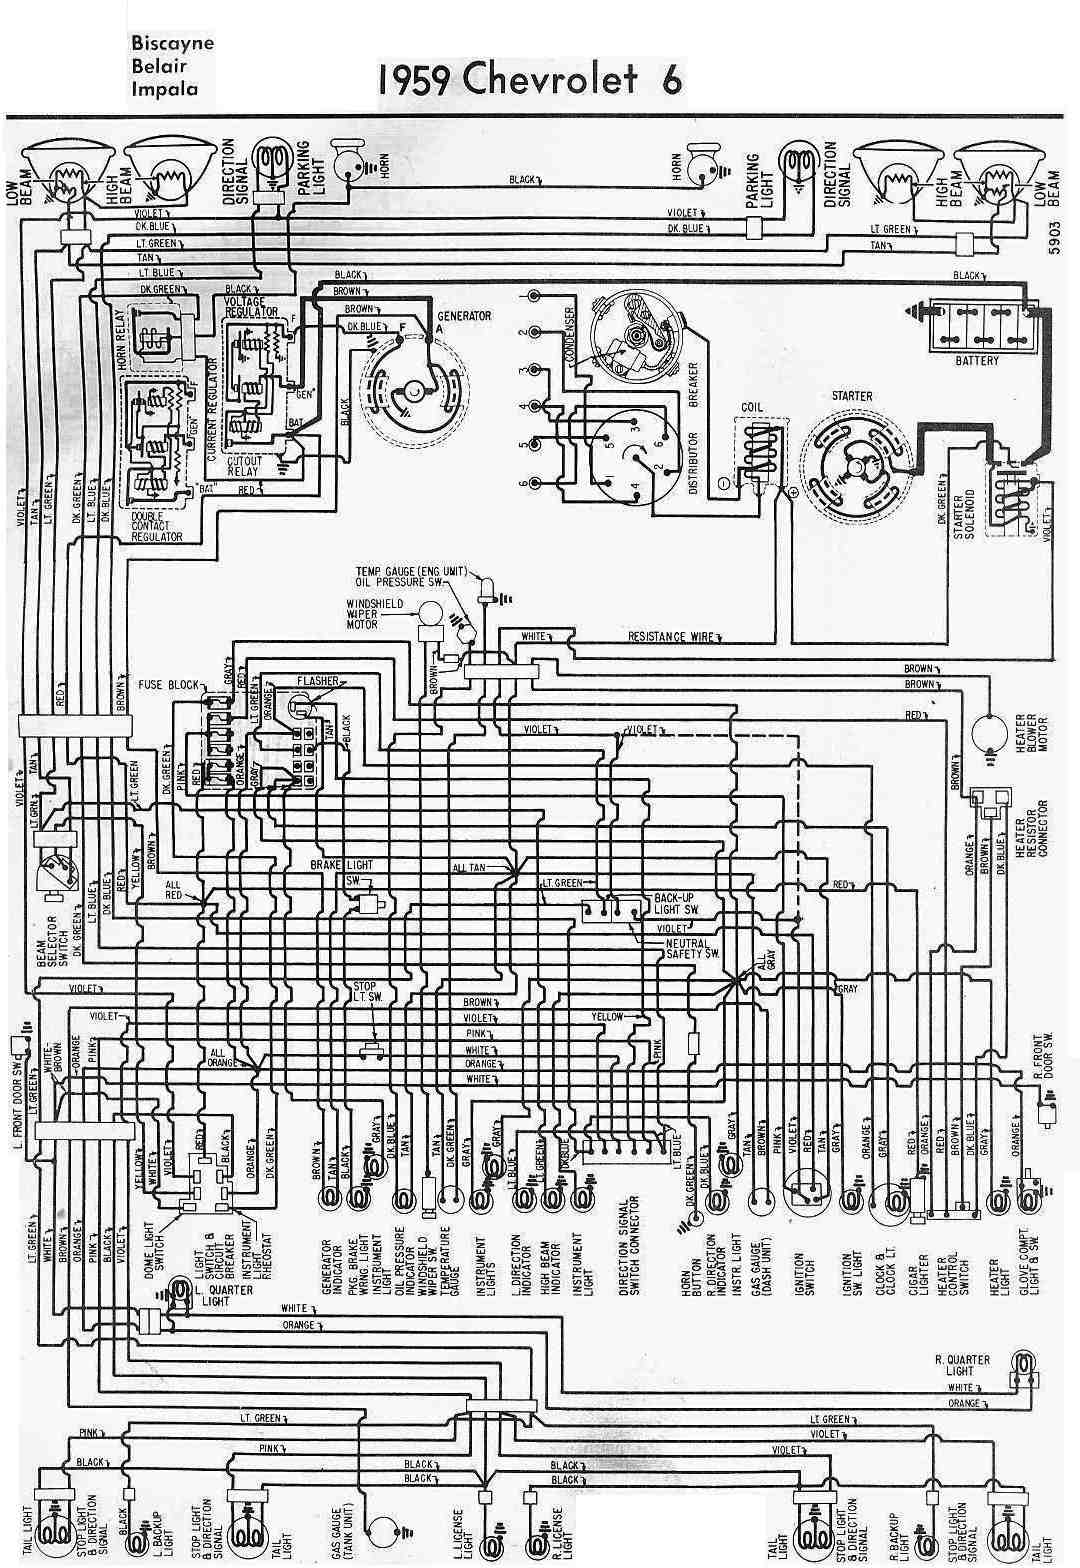 1958 Biscayne Wiring Diagram Trusted Diagrams Chevy 1959 Product U2022 Air Suspension